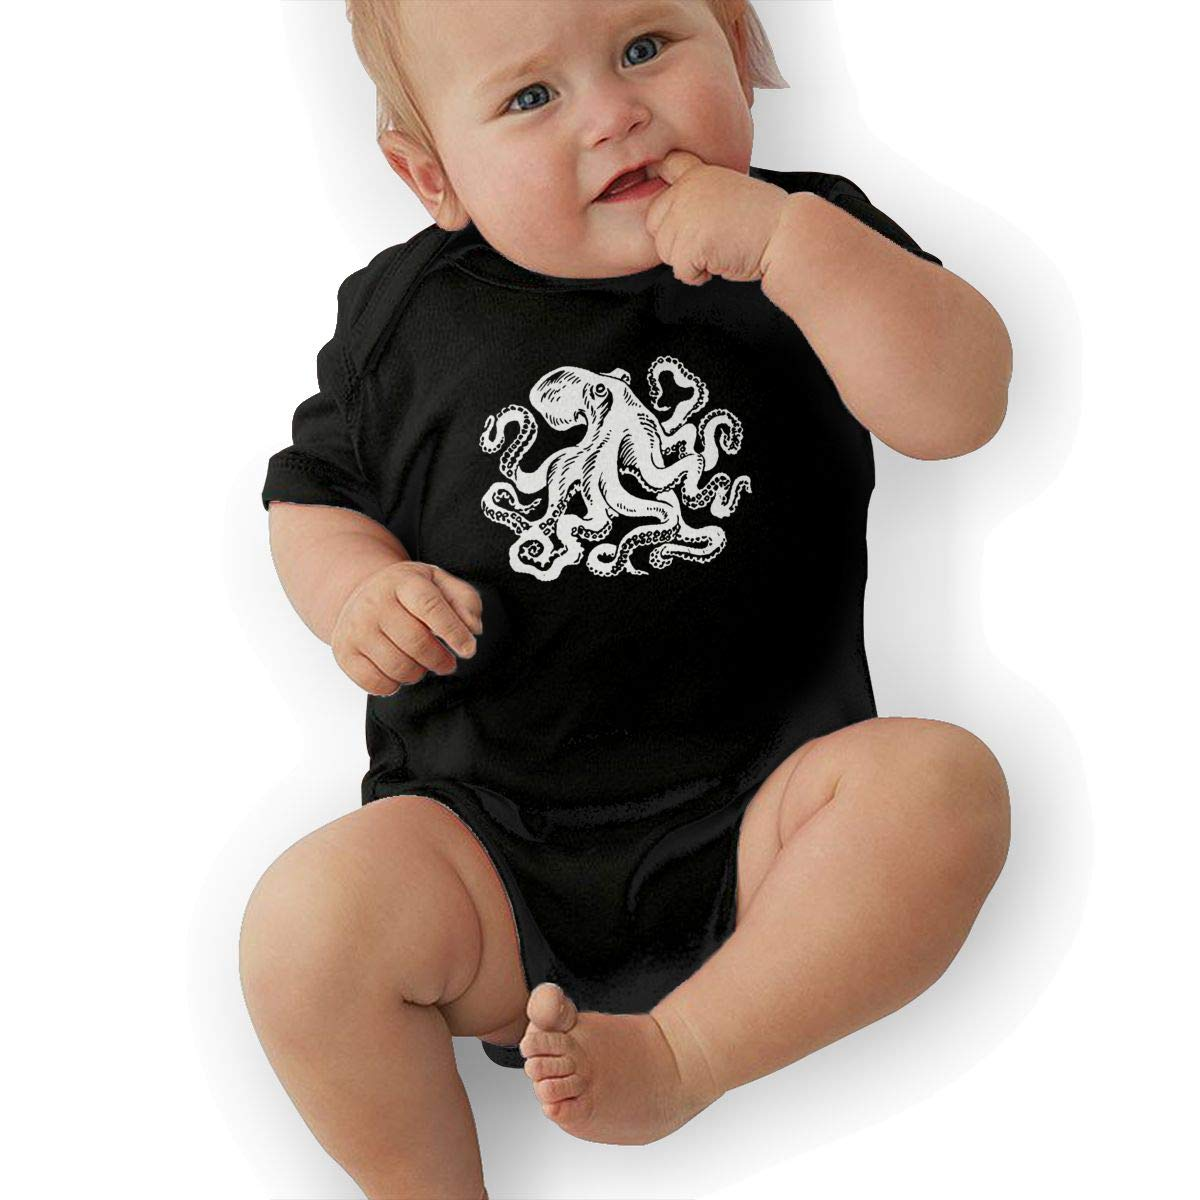 Octopus Infant Baby Girl Boy Romper Jumpsuit Outfit Short Sleeve Bodysuit Tops Clothes